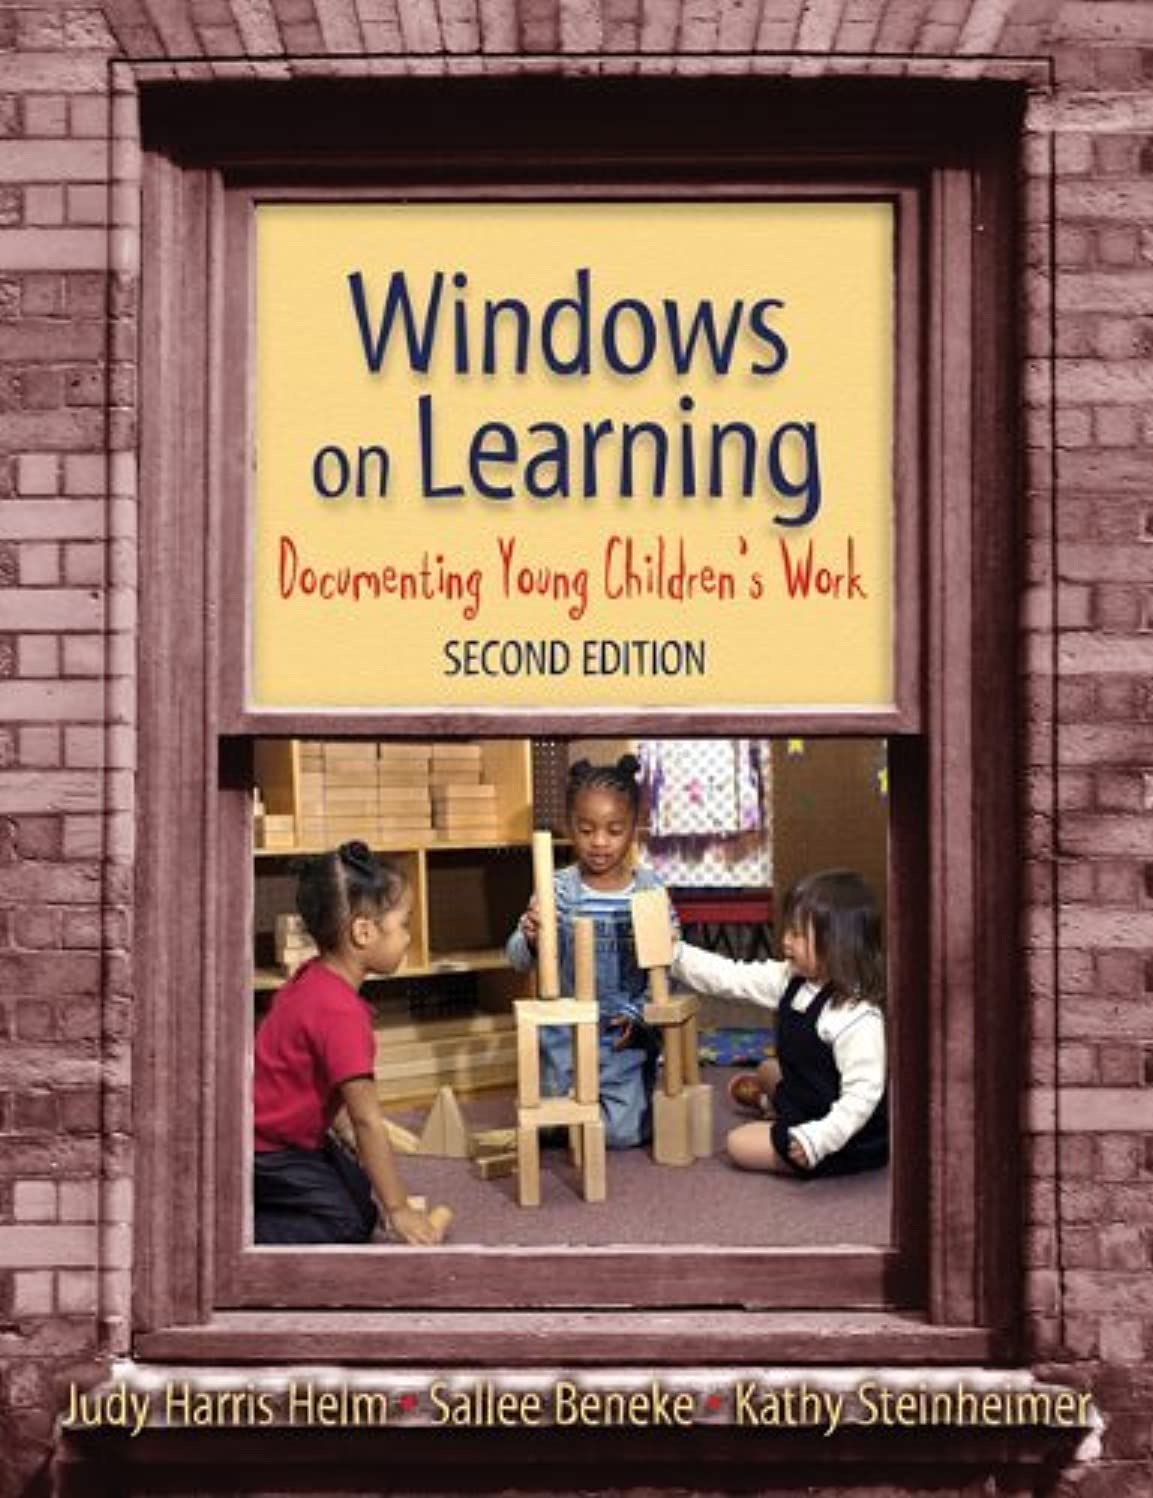 Windows on Learning: Documenting Young Children's Work, Second Edition (Early Childhood Education Series) by Judy Harris Helm (2007-06-15)